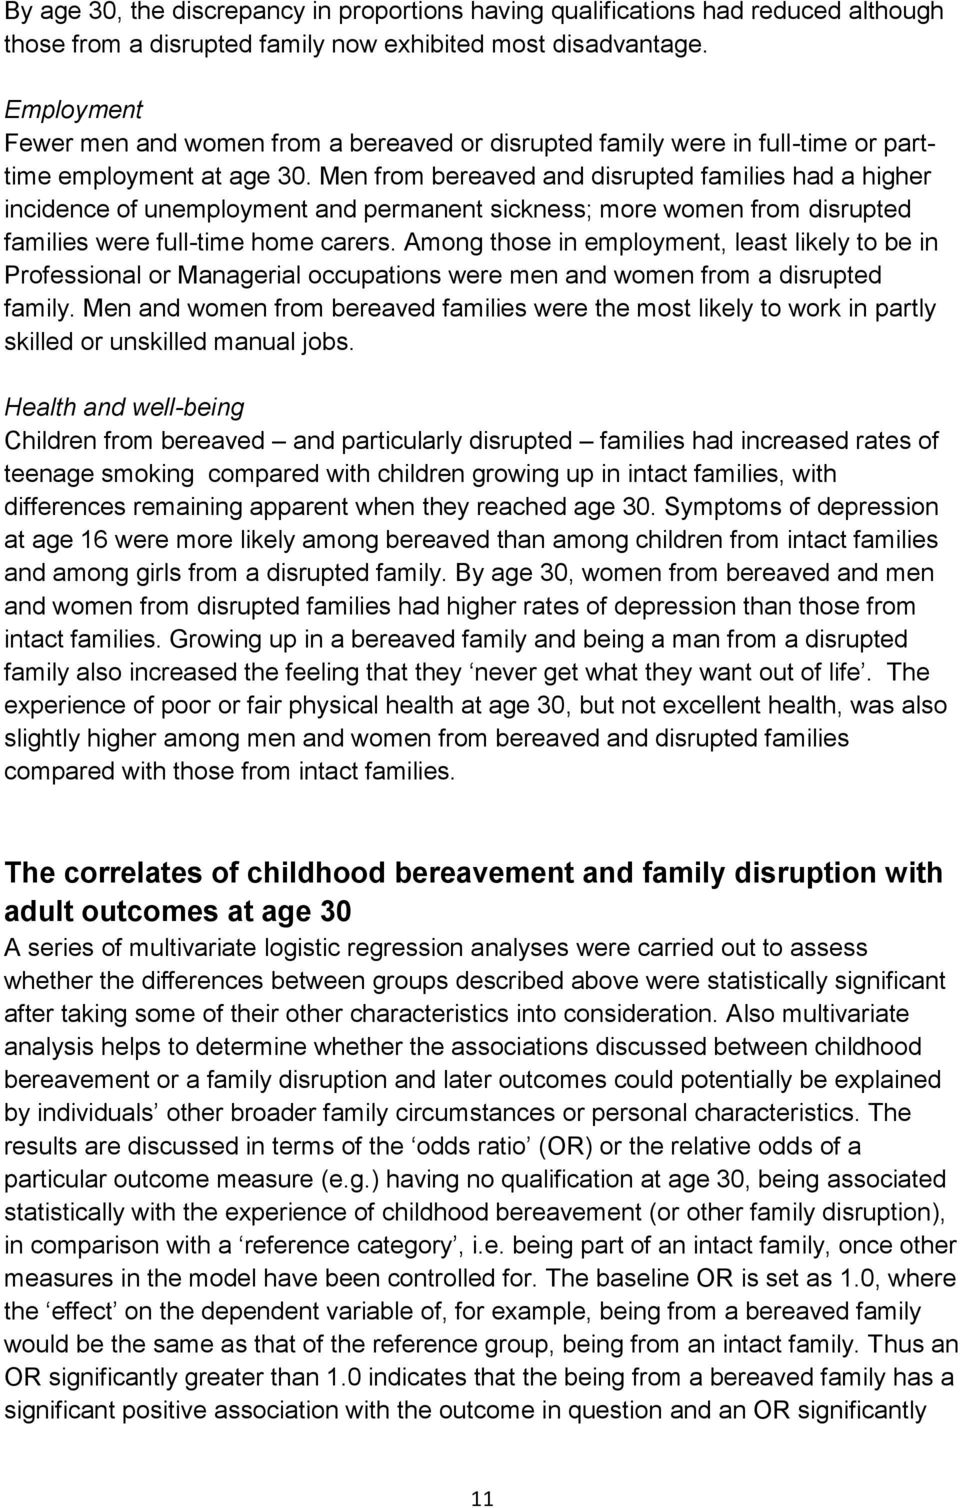 Men from bereaved and disrupted families had a higher incidence of unemployment and permanent sickness; more women from disrupted families were full-time home carers.